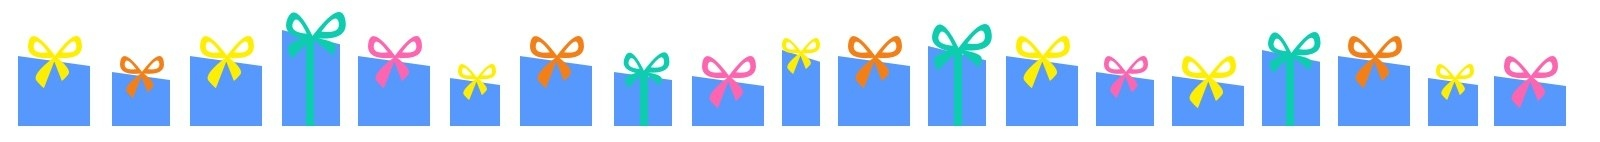 line of animated gift bags